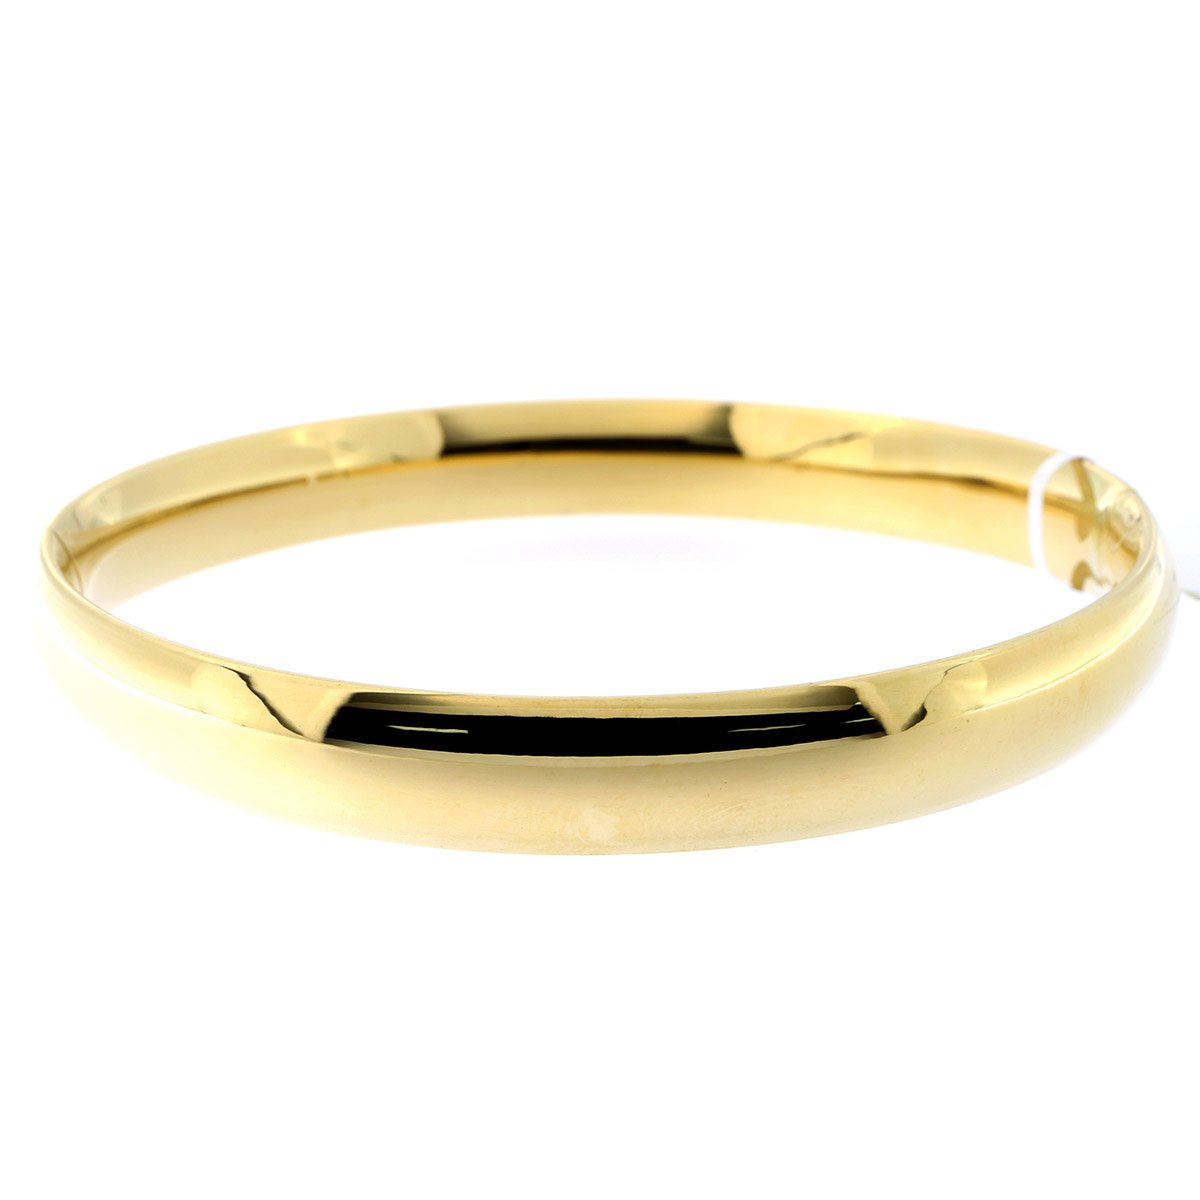 14k Yellow Gold 8 Millimeters Polished Bangle Bracelet, 7 Inches by Beauniq